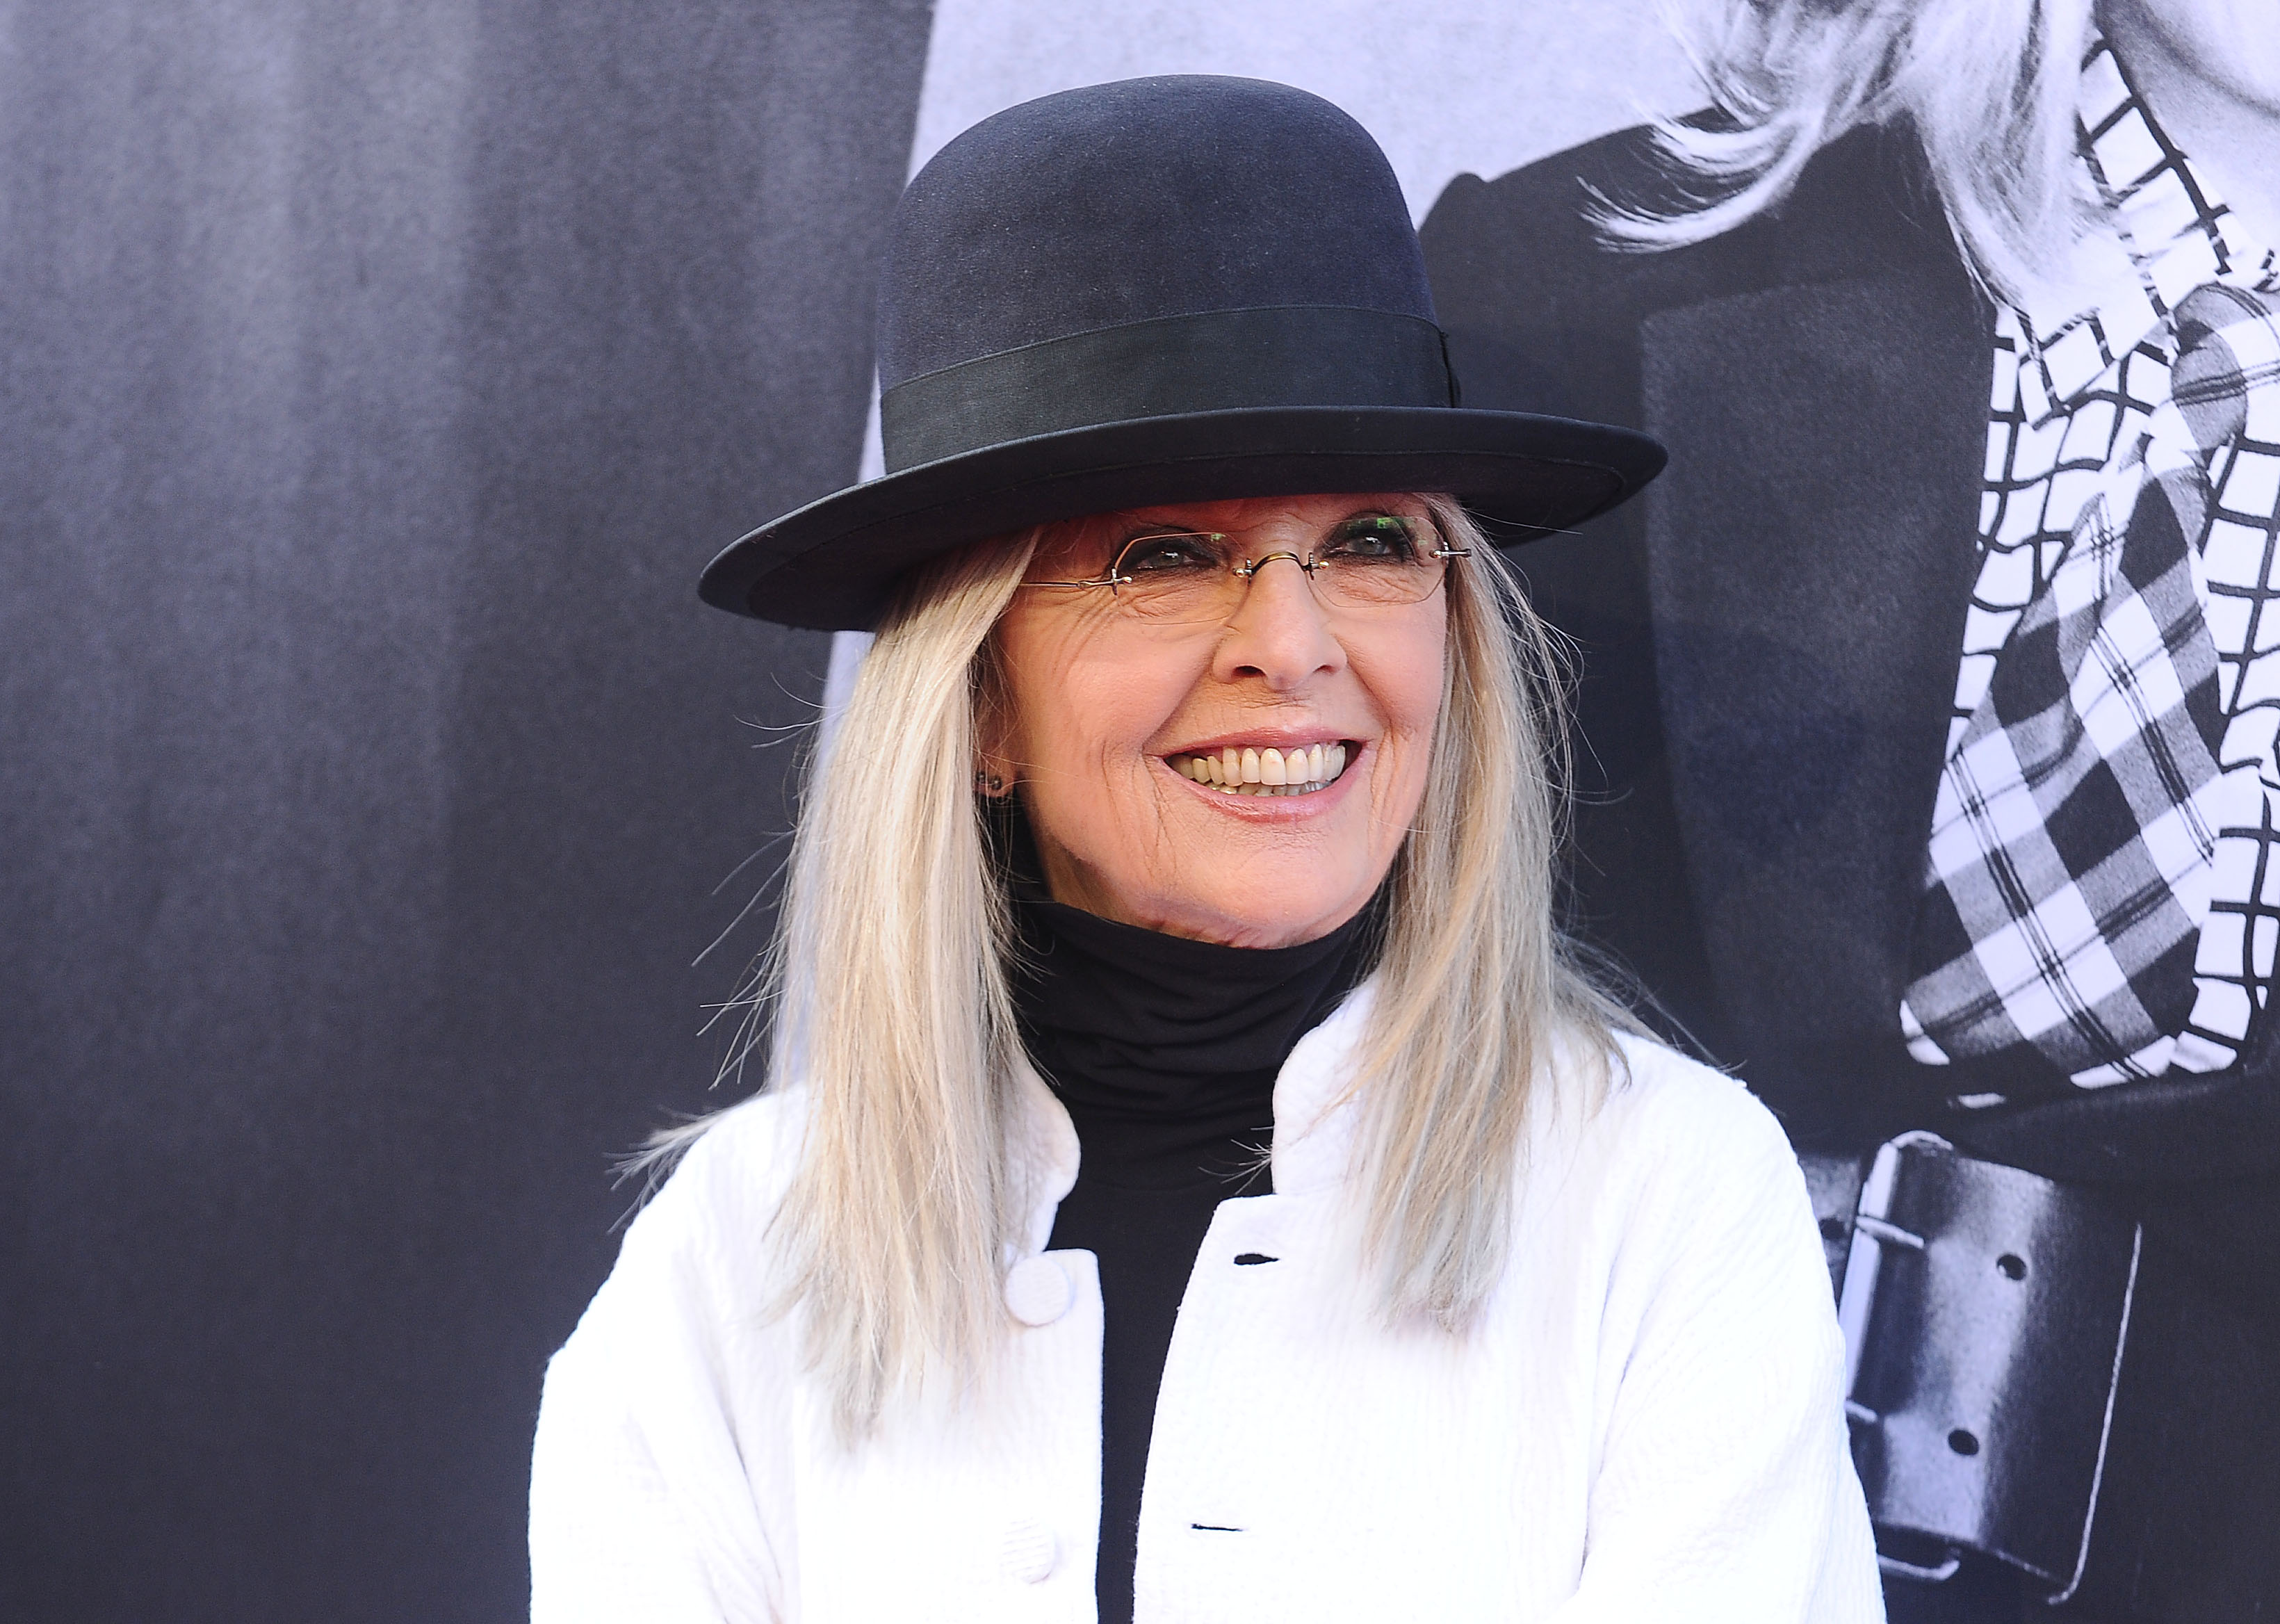 Actress Diane Keaton attends the AFI Life Achievement Award gala at Dolby Theatre on June 8, 2017 in Hollywood, Calif.